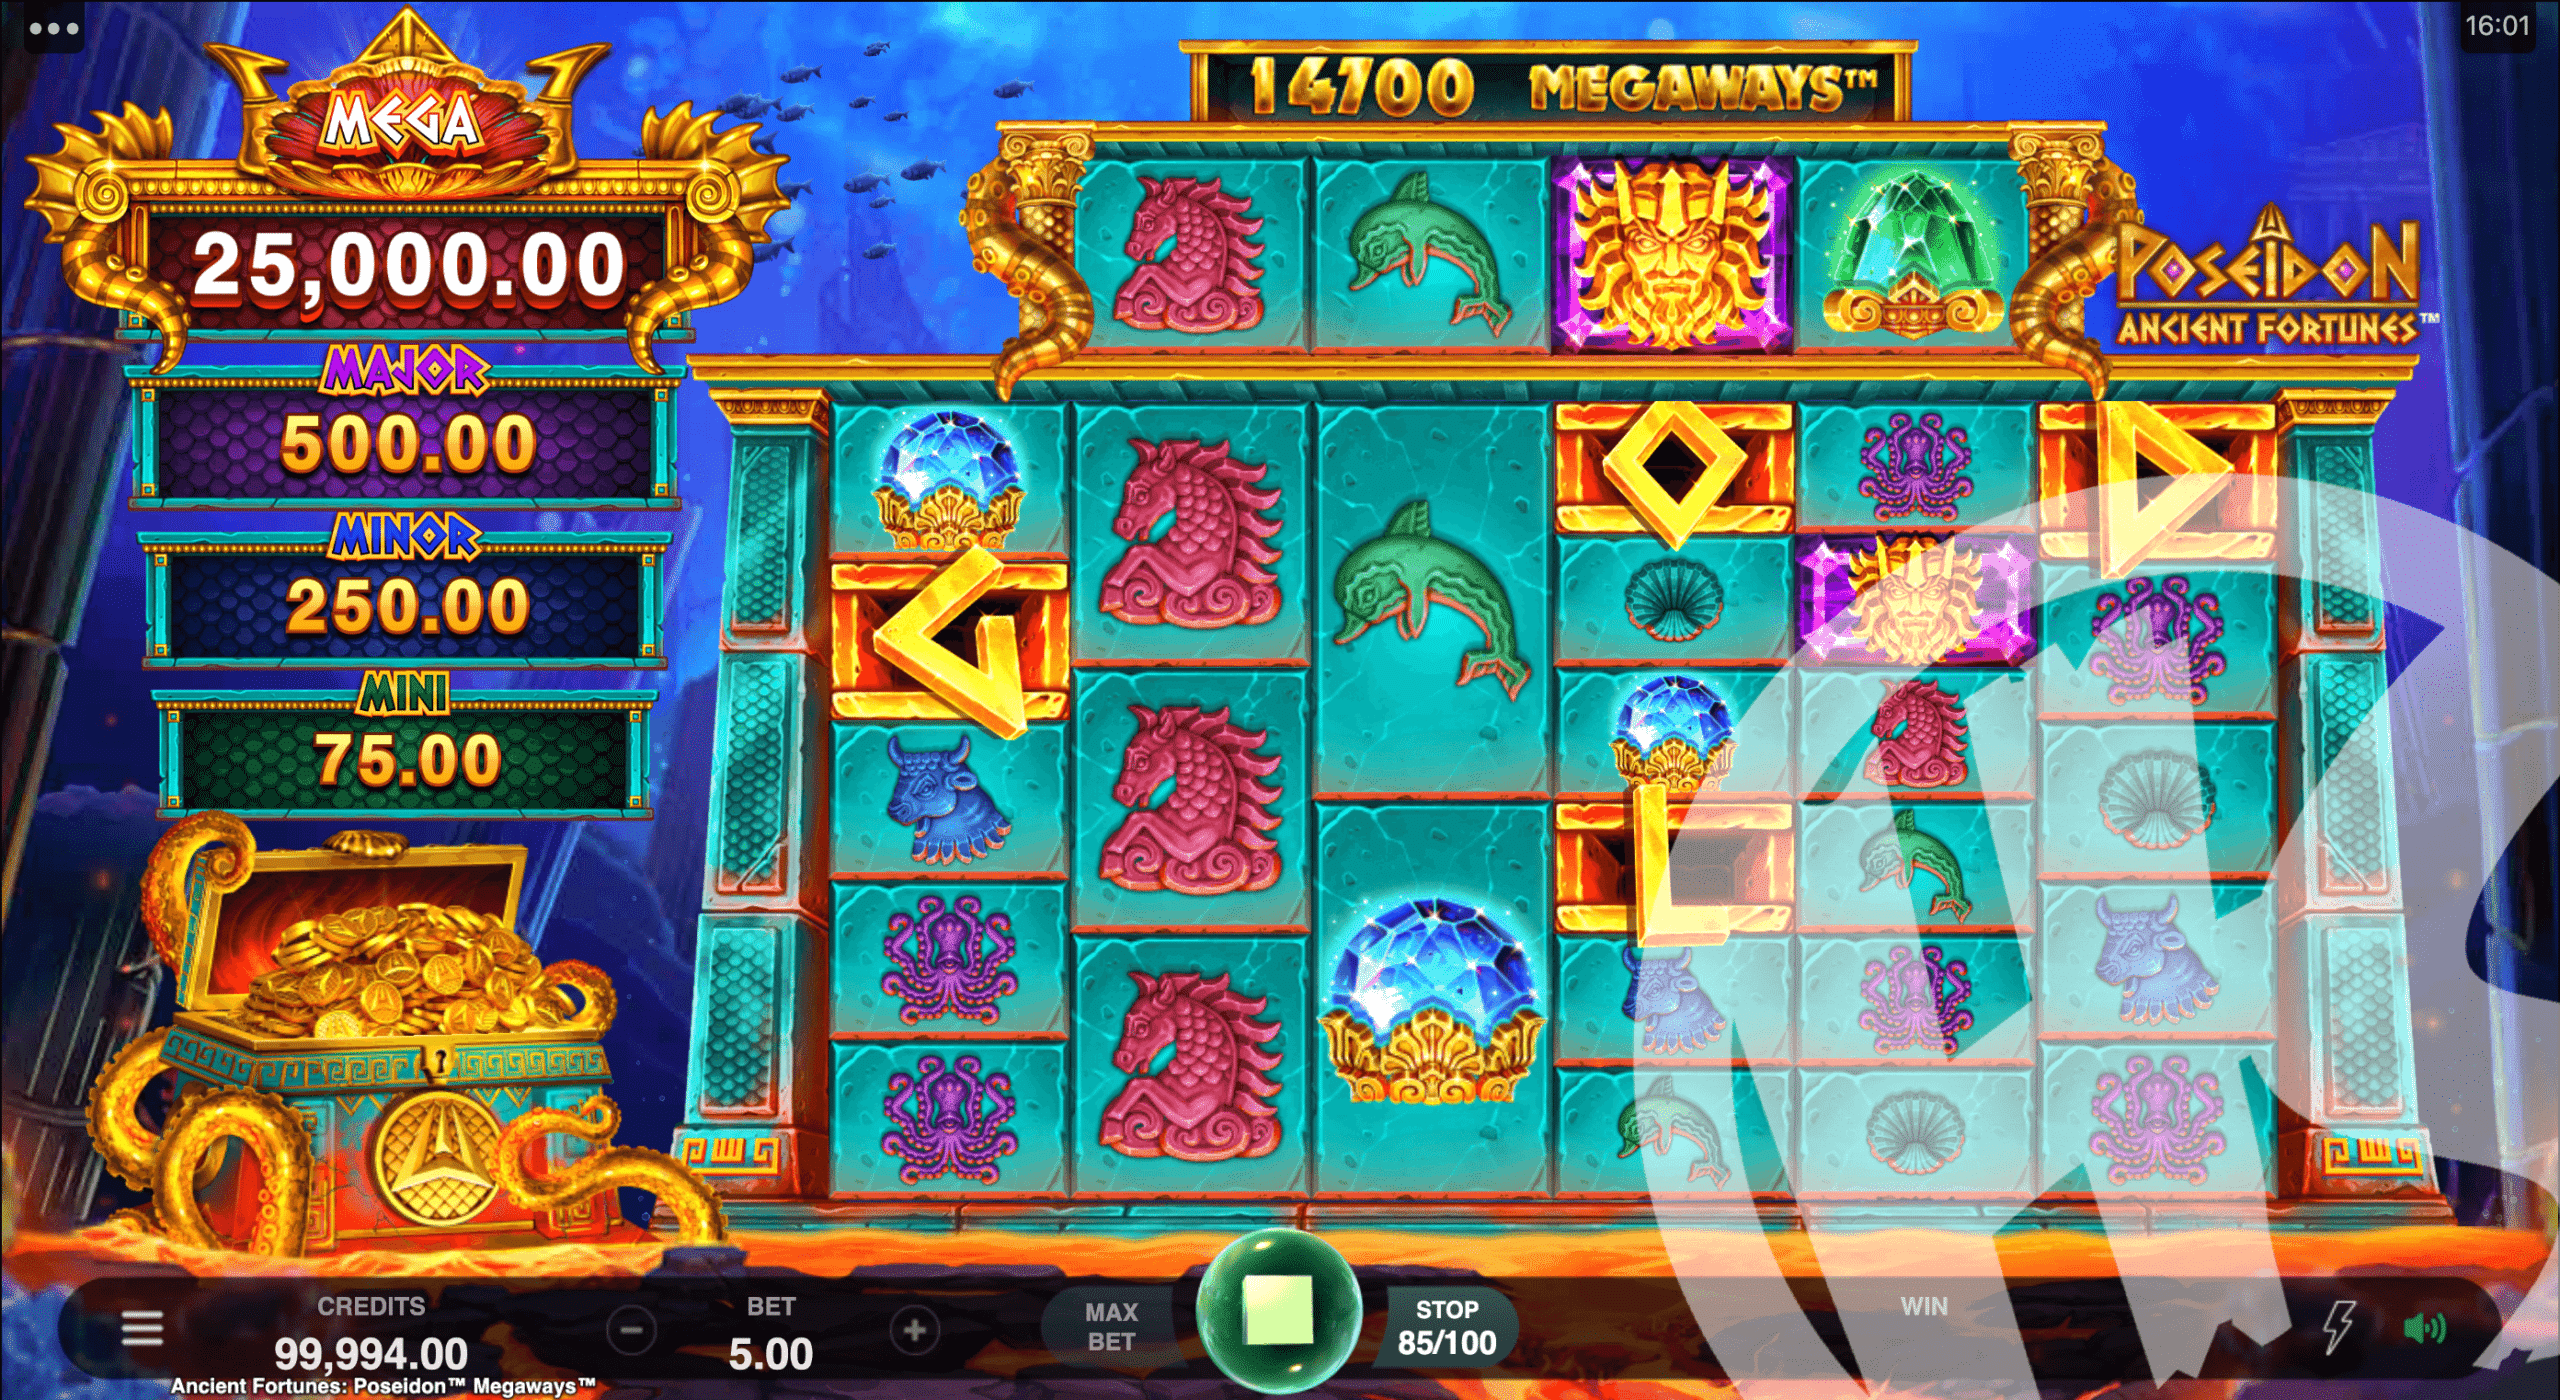 GOLD Scatters Unlock Free Spins